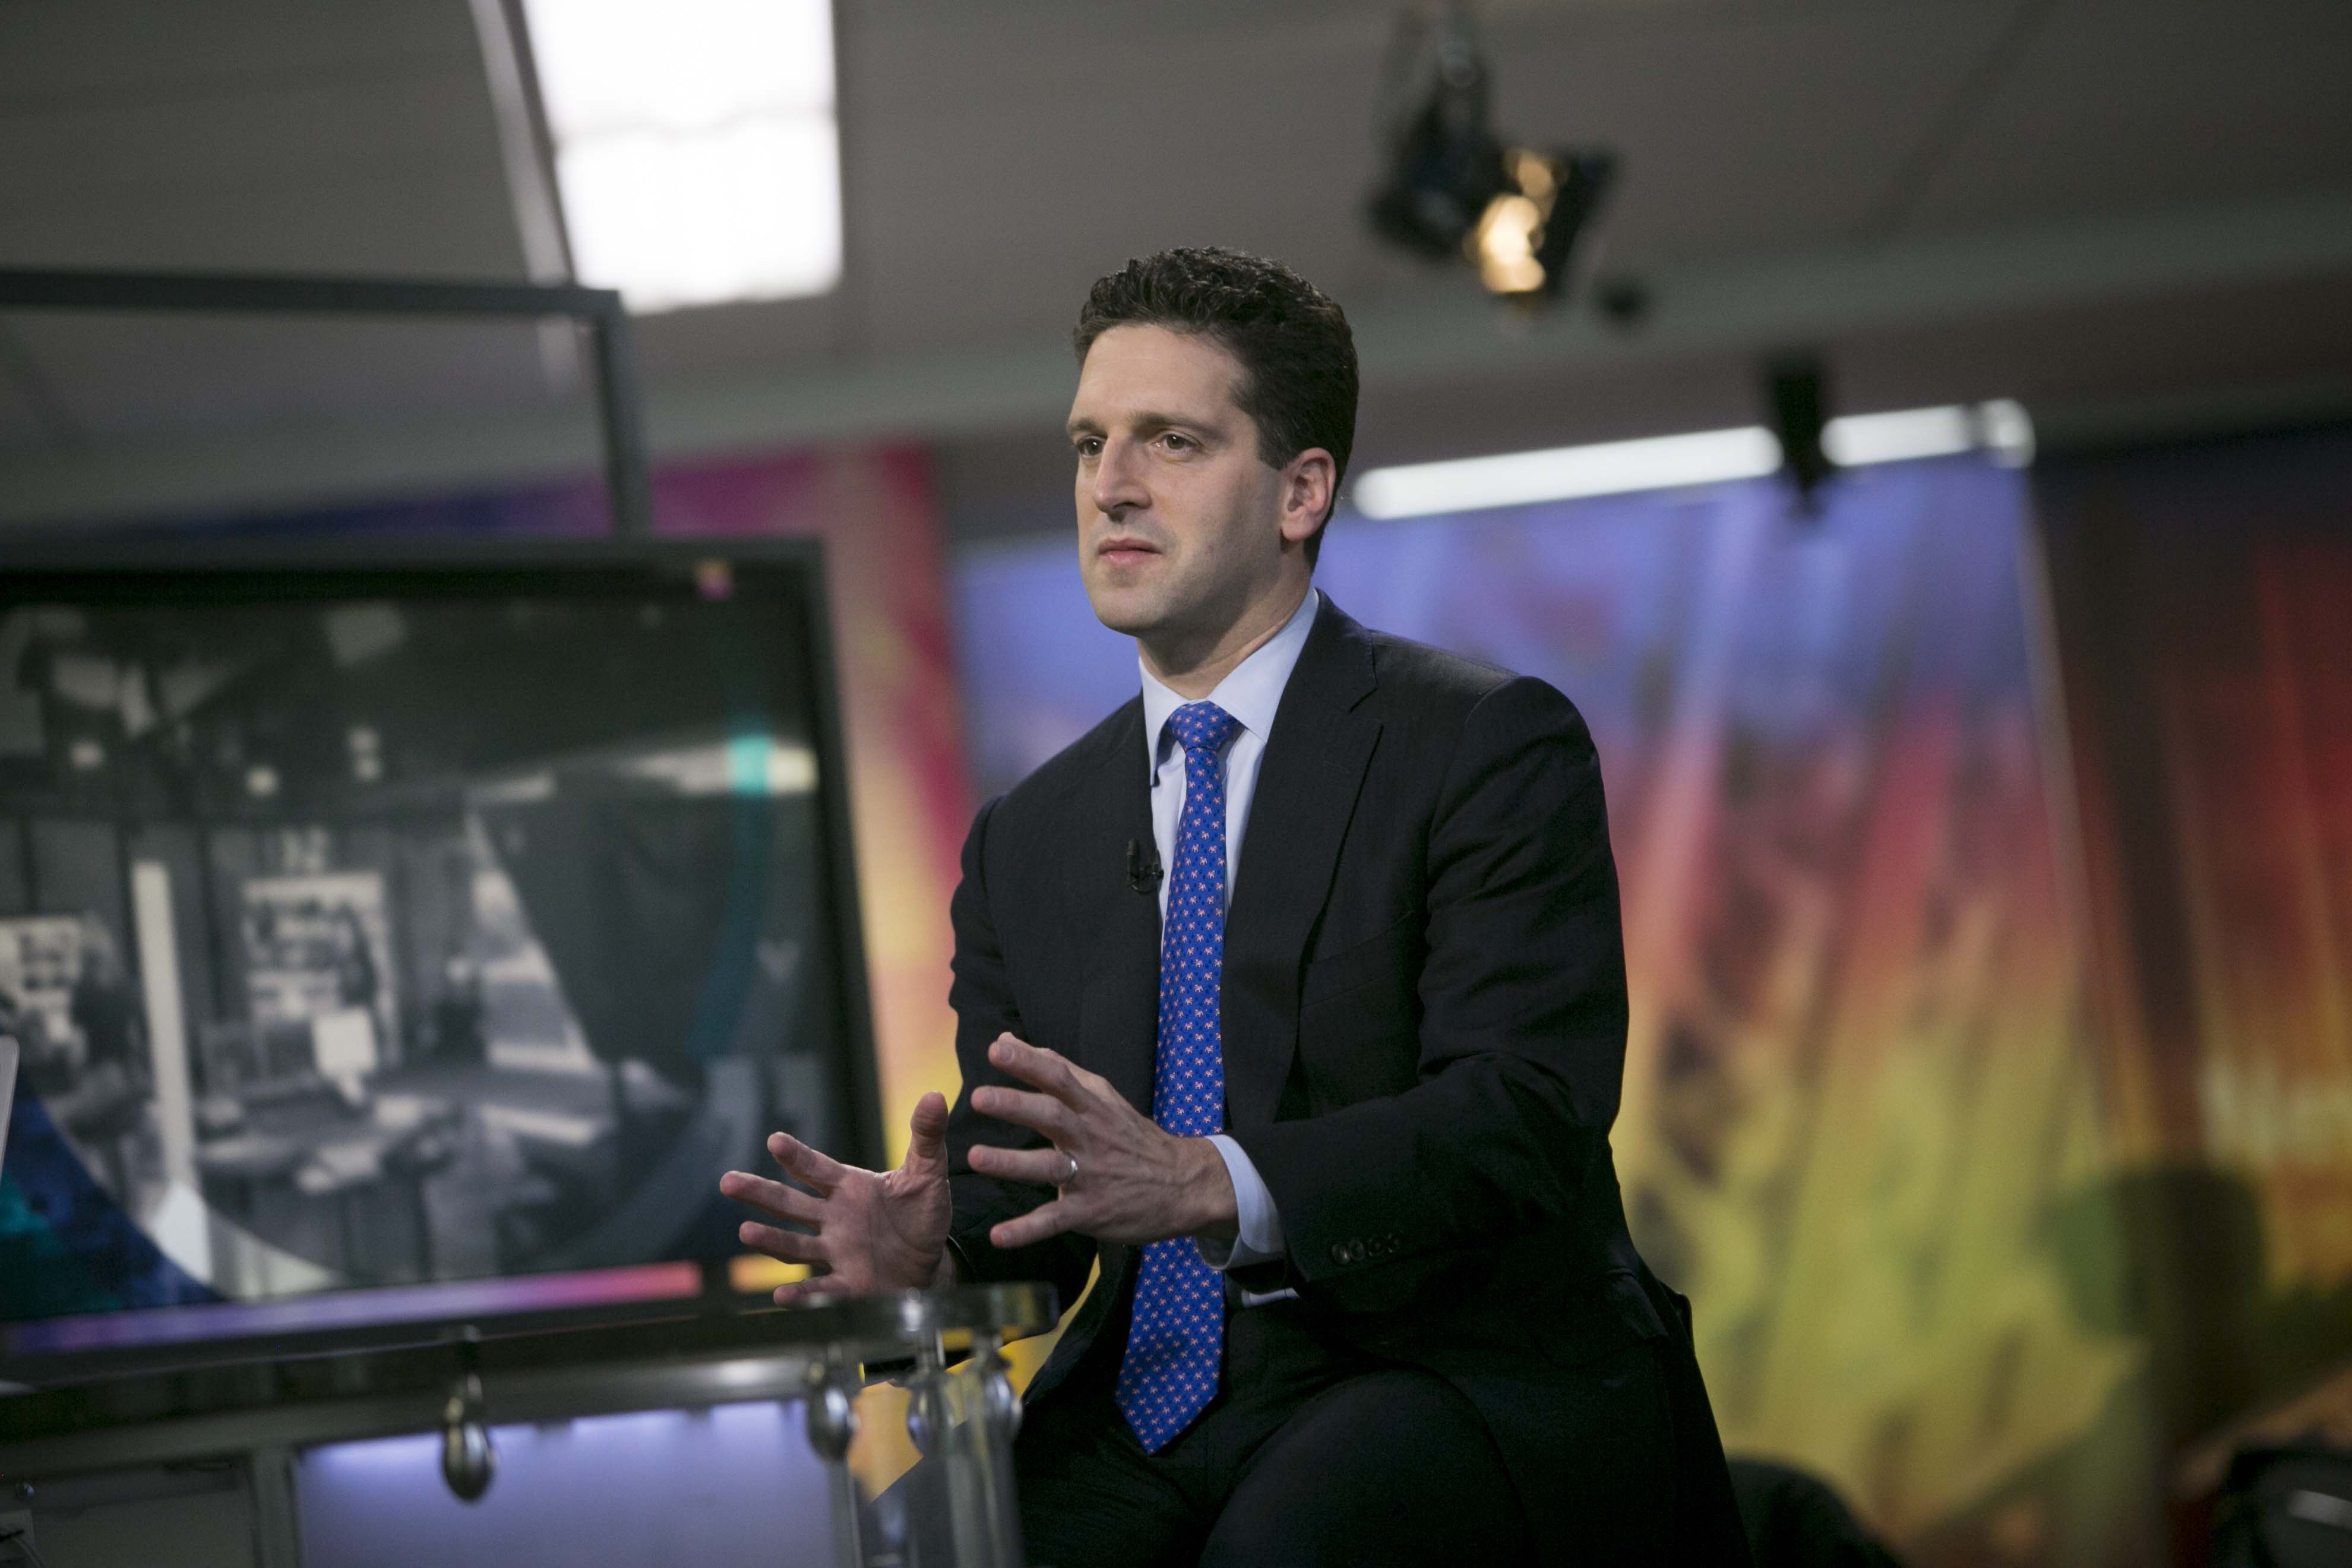 Superintendent of the New York State Department of Financial Services Benjamin Lawsky Interview